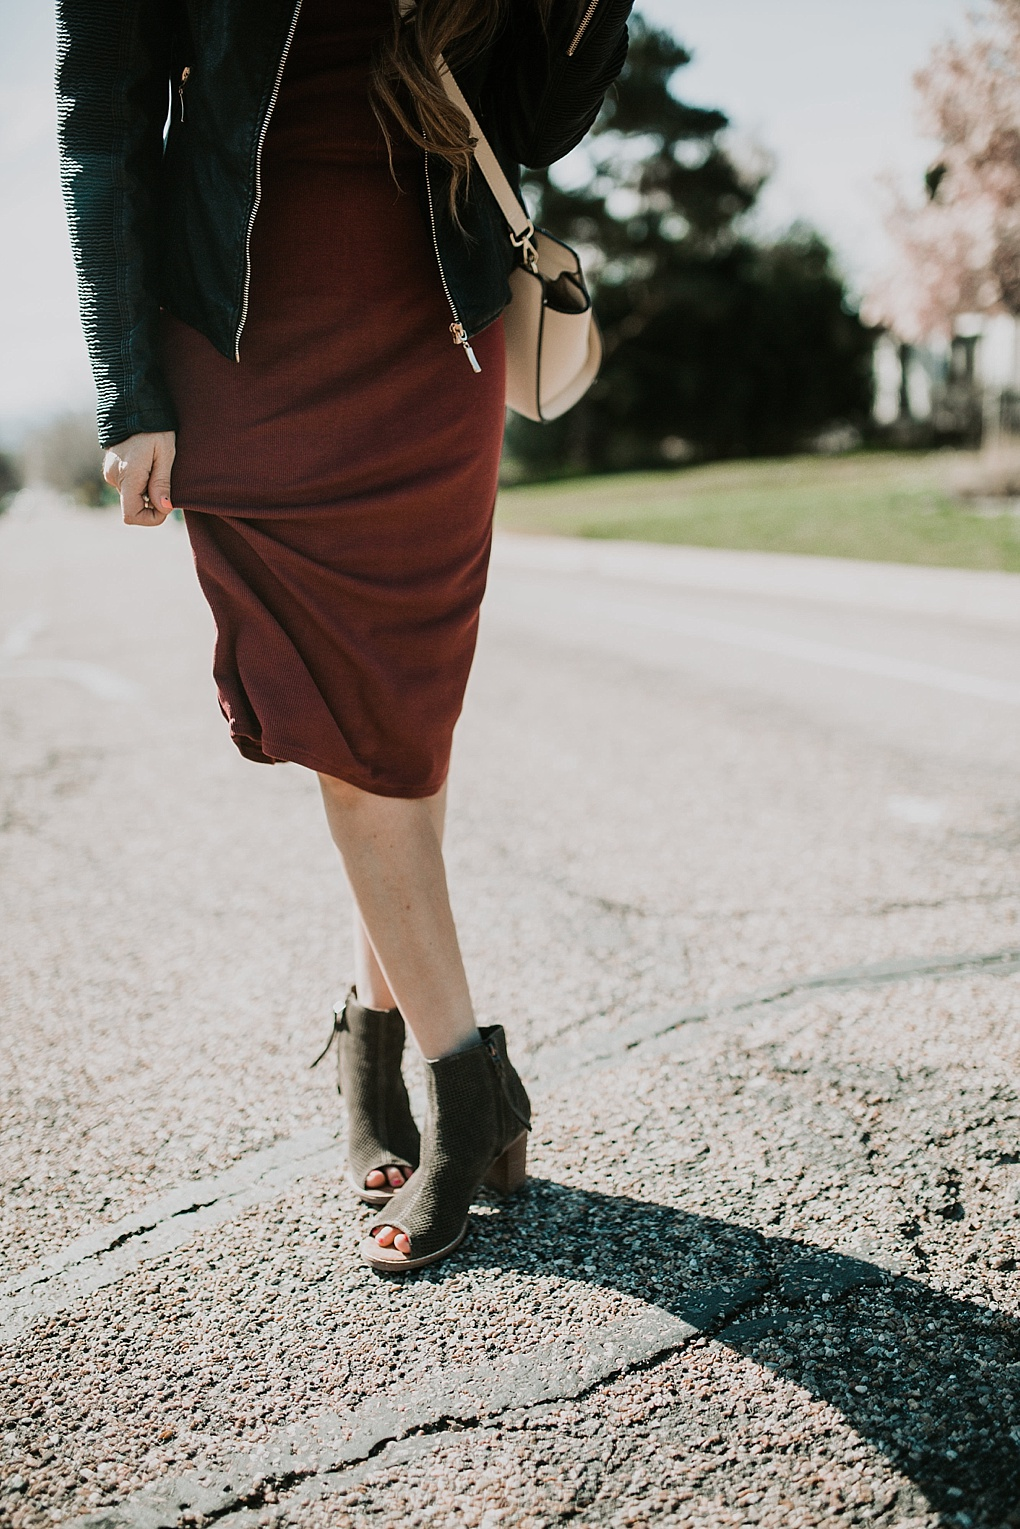 girl standing in road in maroon t shirt dress with toms wedges and long loosely curled brown hair with caramel highlights with leather jacket on and michael kors crossbody bag